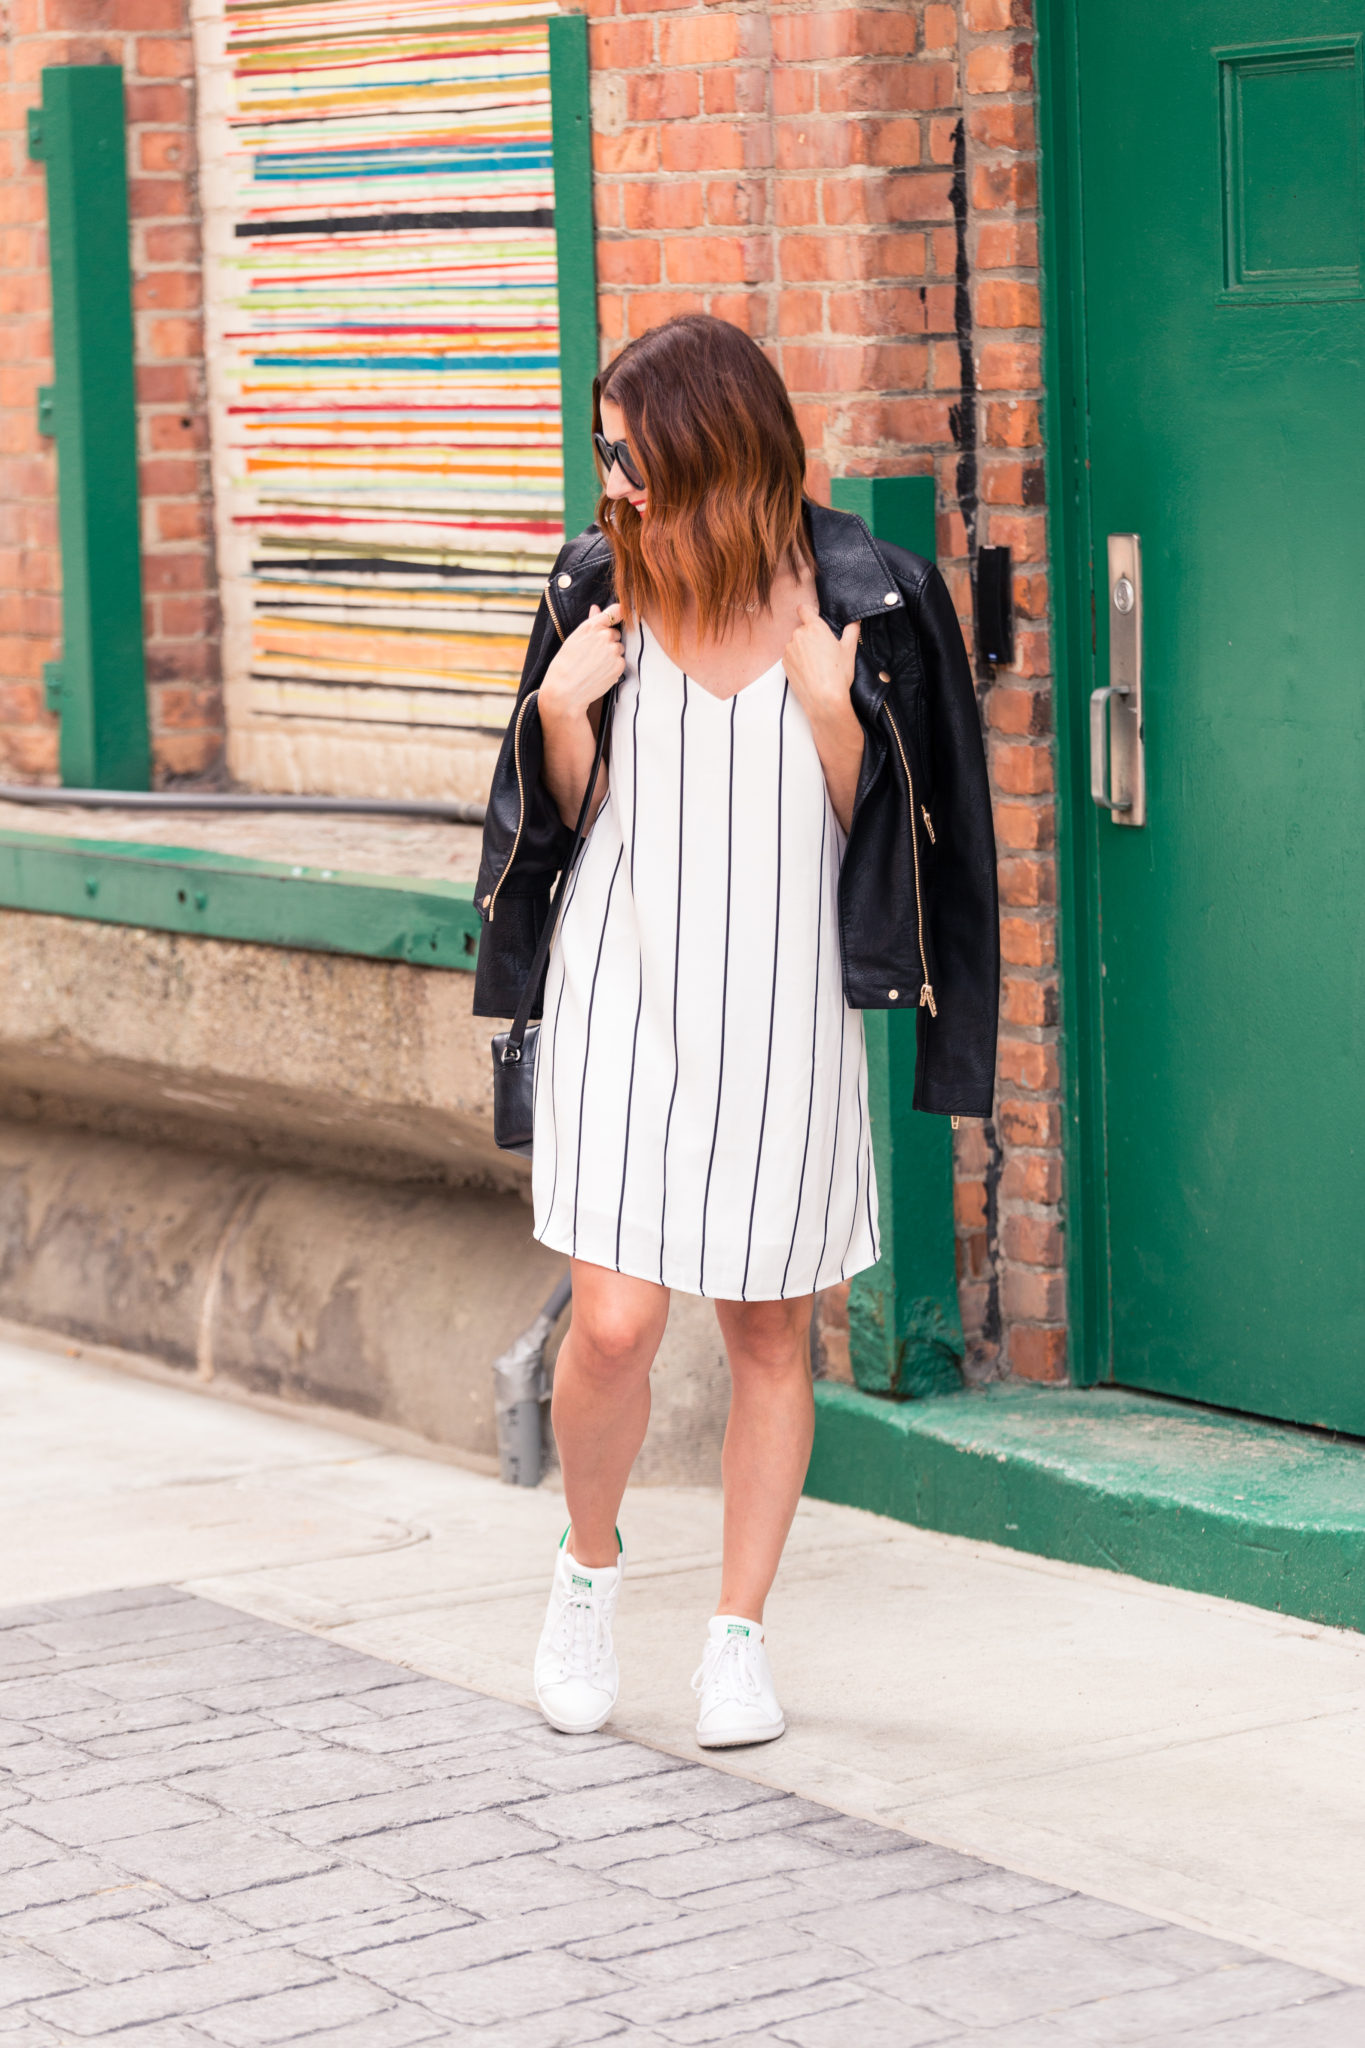 how to wear a dress and sneakers | Layering a leather moto jacket over a dress | slip dress style | the best moto jacket of the nordstrom anniversary sale 2017 under $100 on allweareblog.com